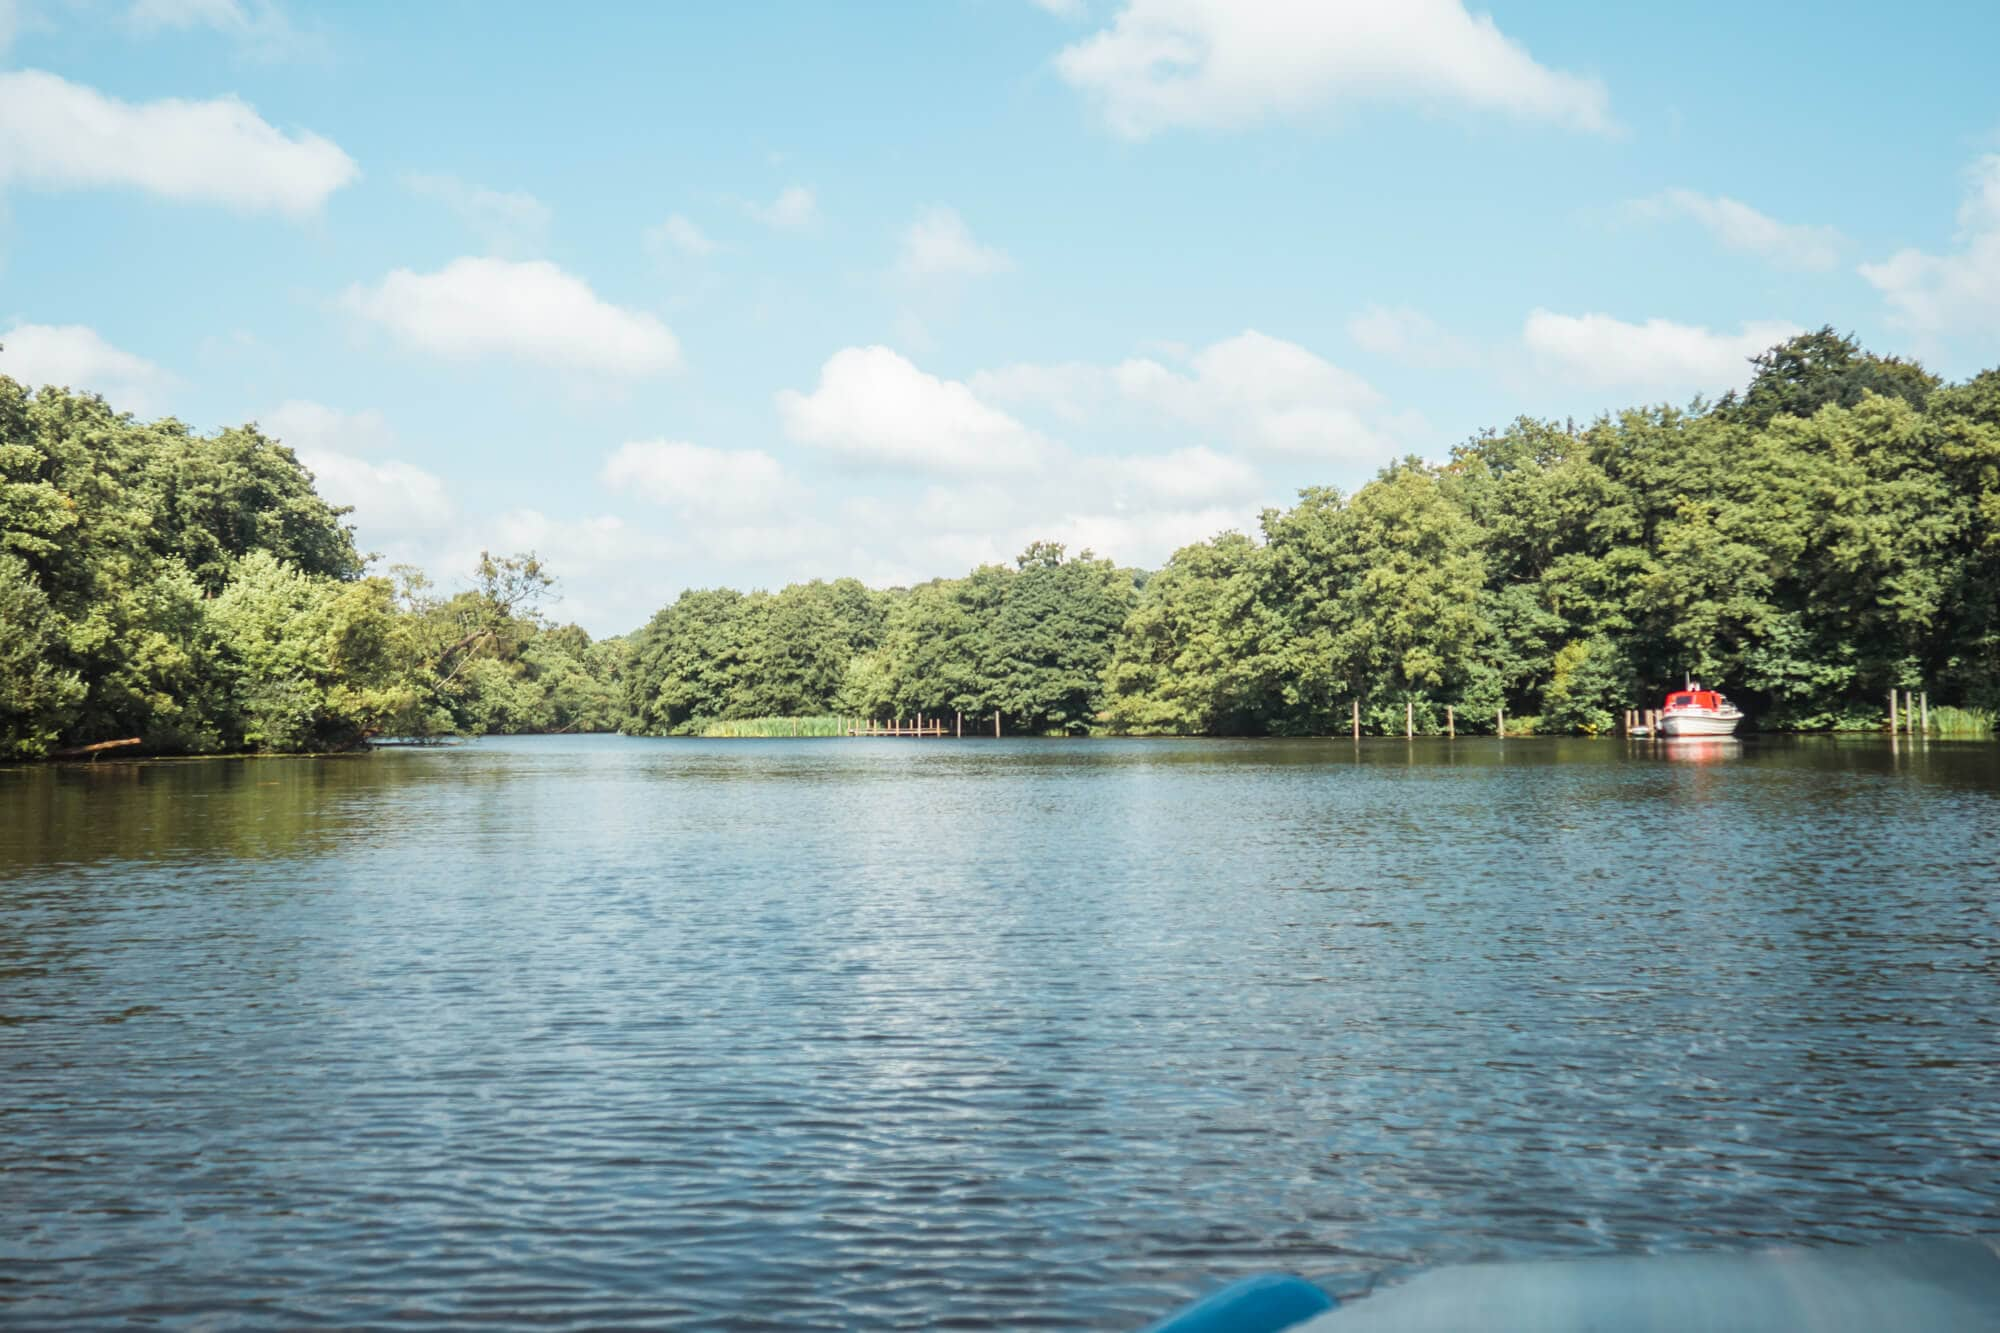 3 awesome day trips from Aarhus - Solar powered boat trip to Himmelbjerget in Skanderborg